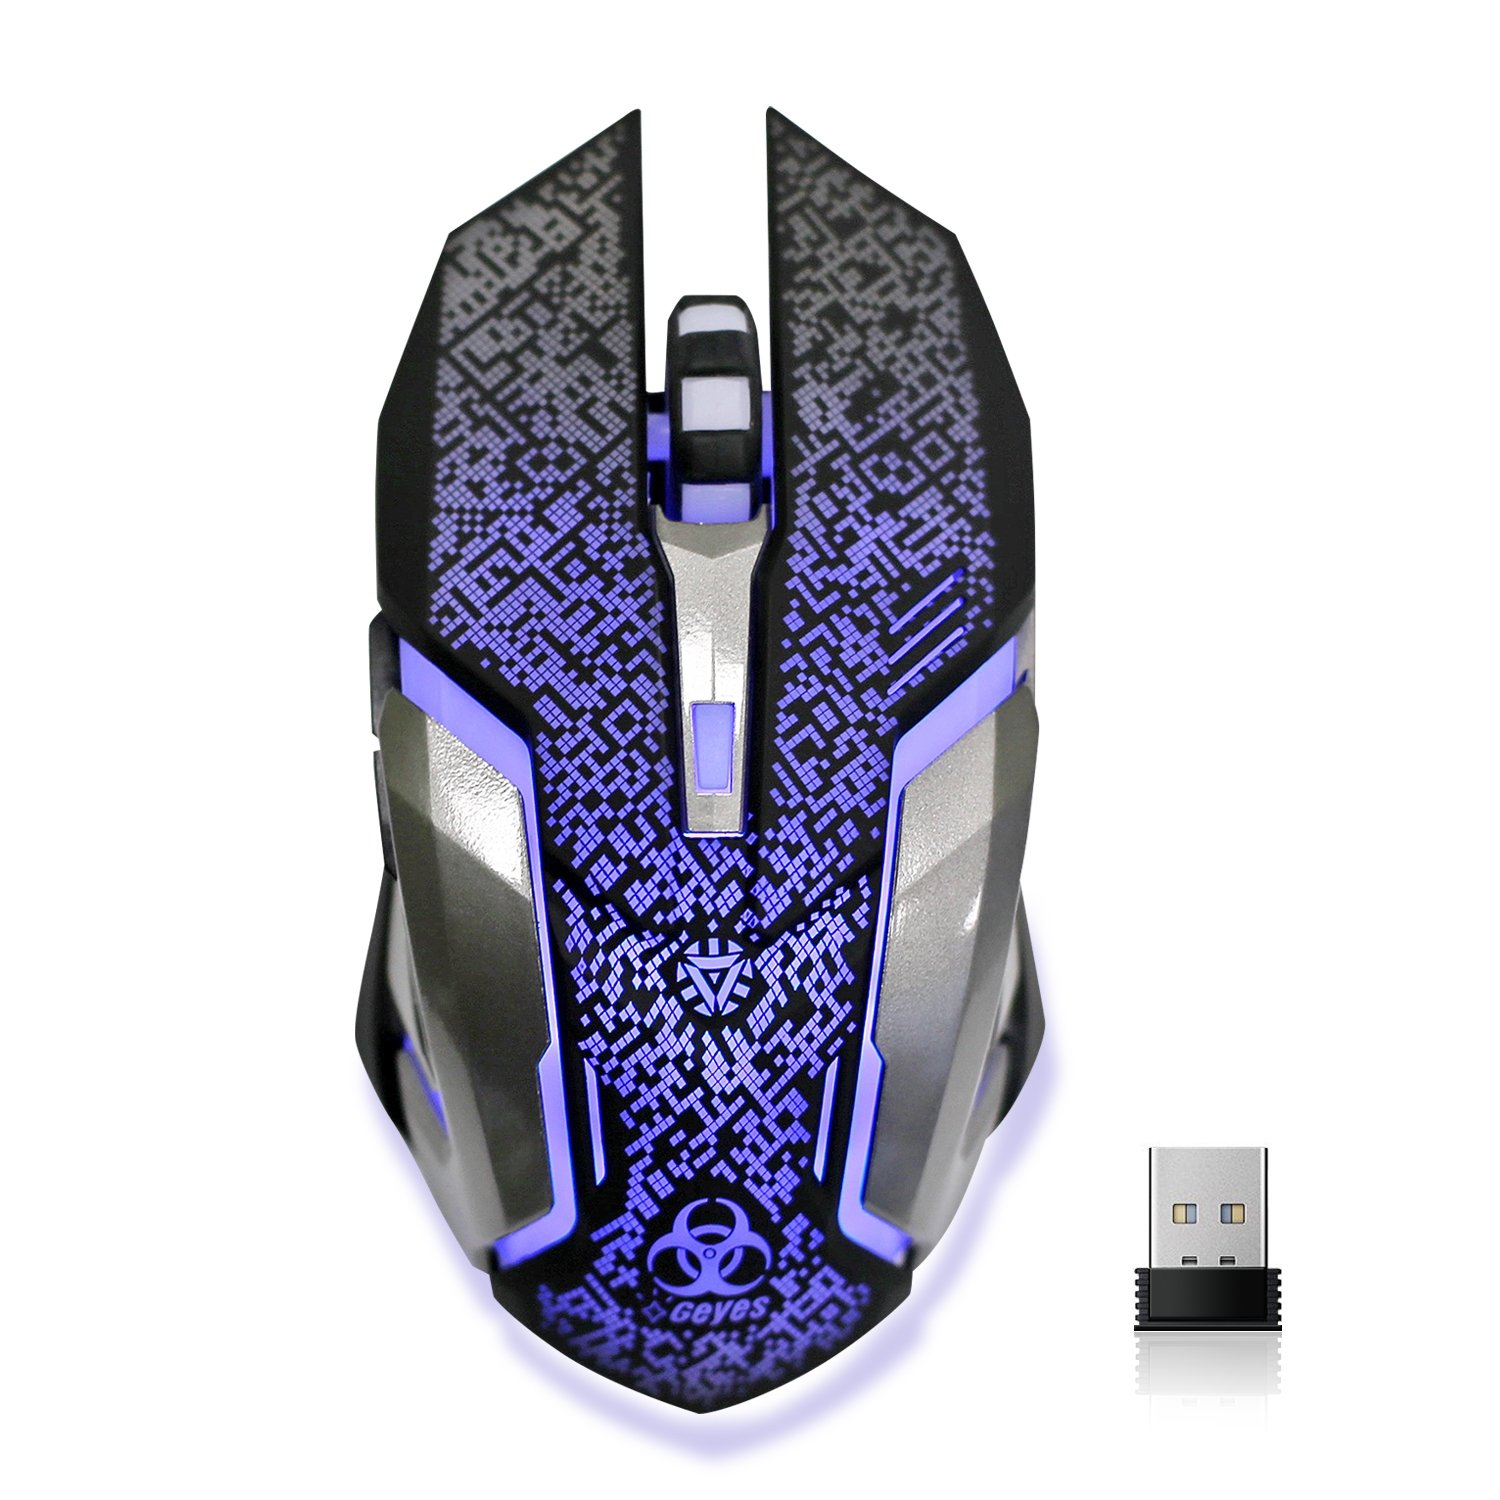 Wireless Gaming Mouse, VEGCOO C8 Silent Click Wireless Rechargeable Mouse  with Colorful LED Lights and 2400/1600/1000 DPI 400mah Lithium Battery for